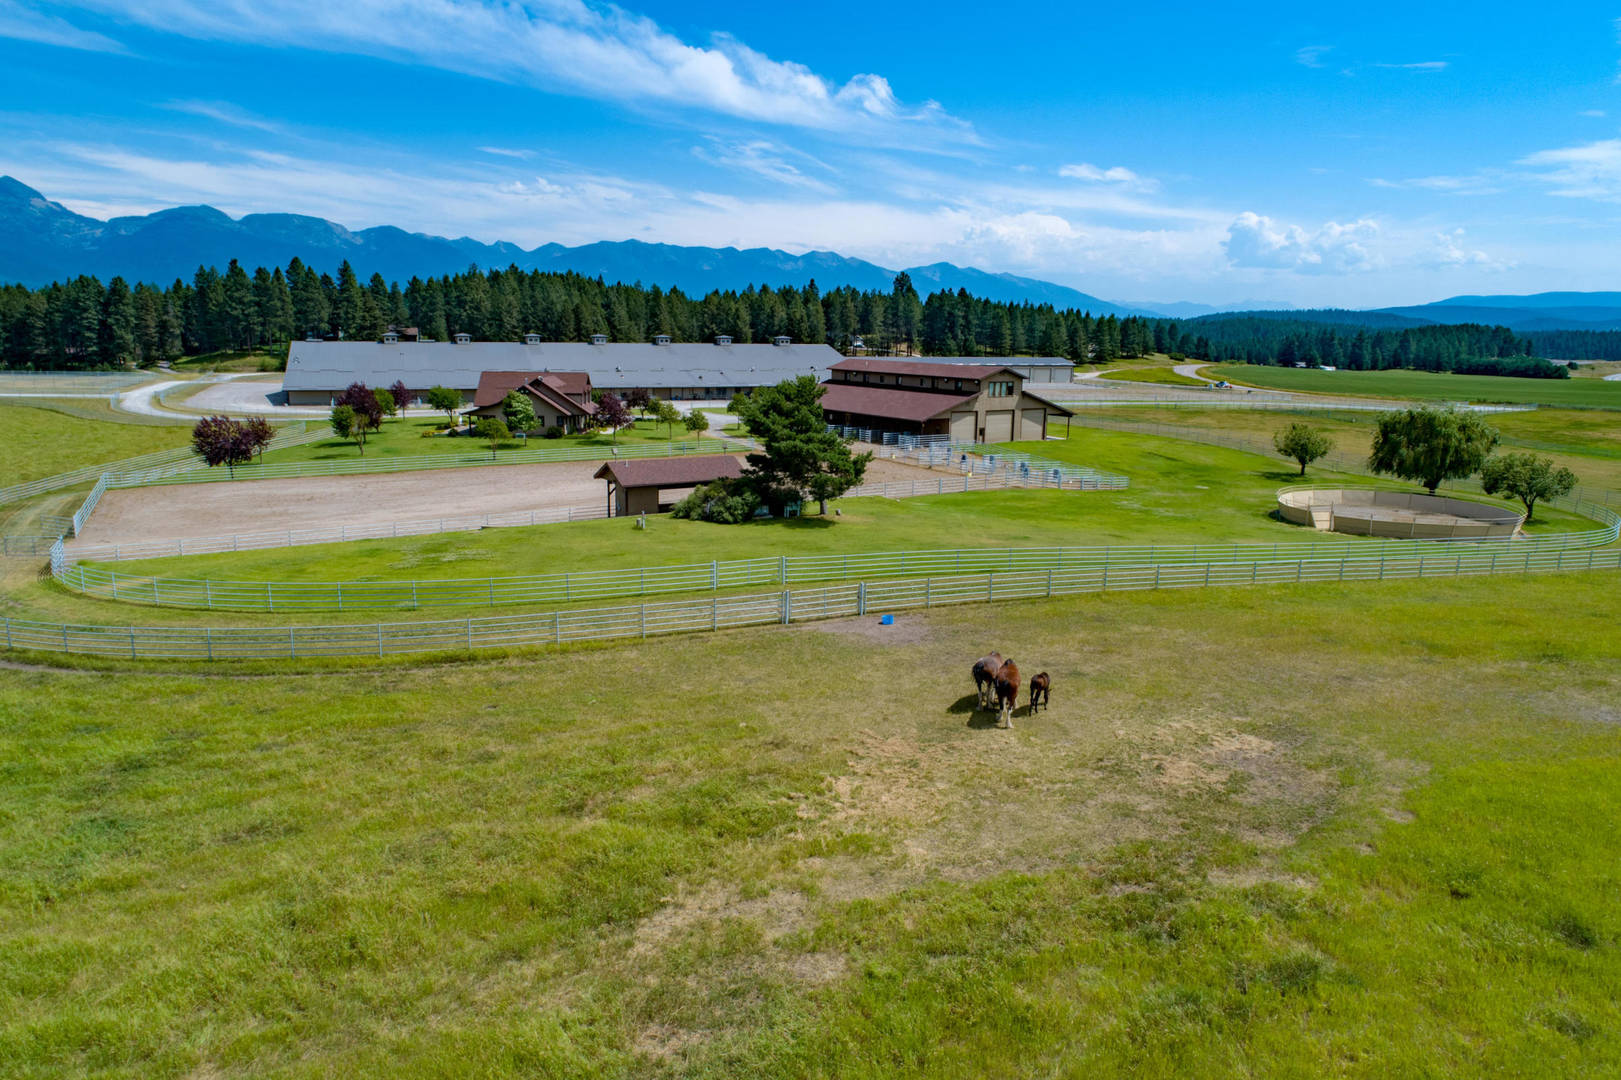 6135 Old Montana Highway 35 Bigfork, MT 59911